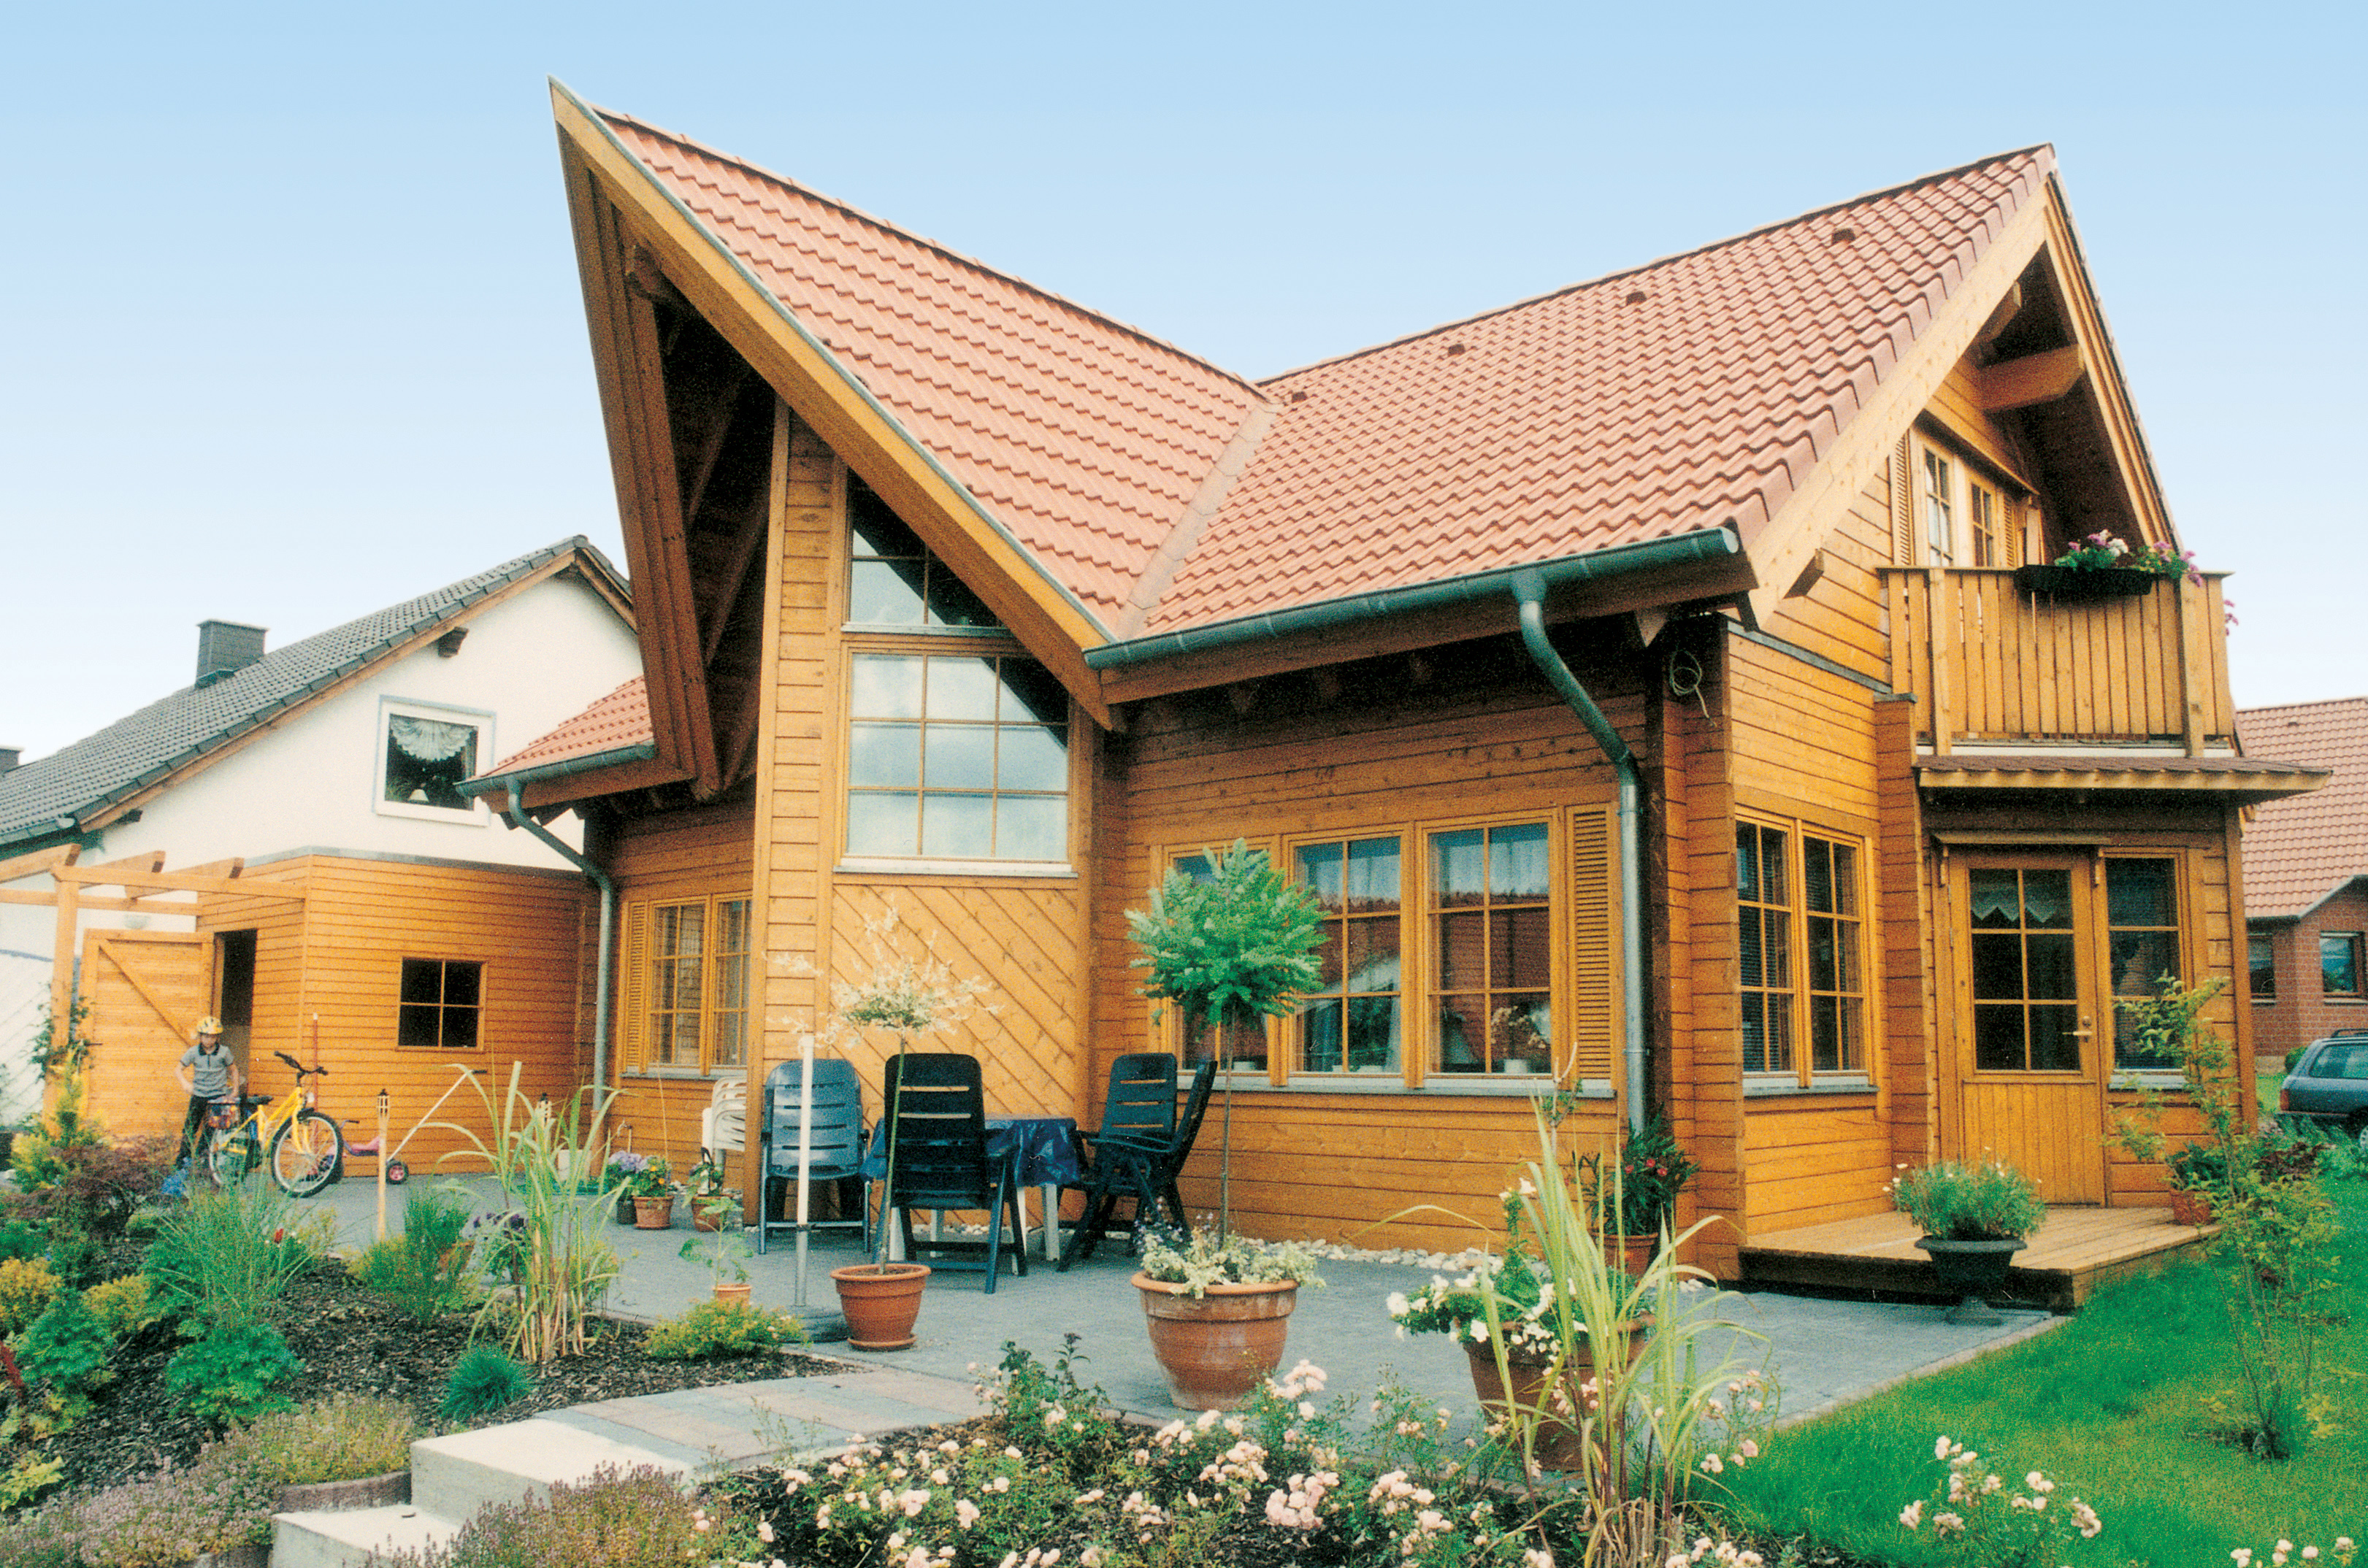 Euro 143 Wooden house